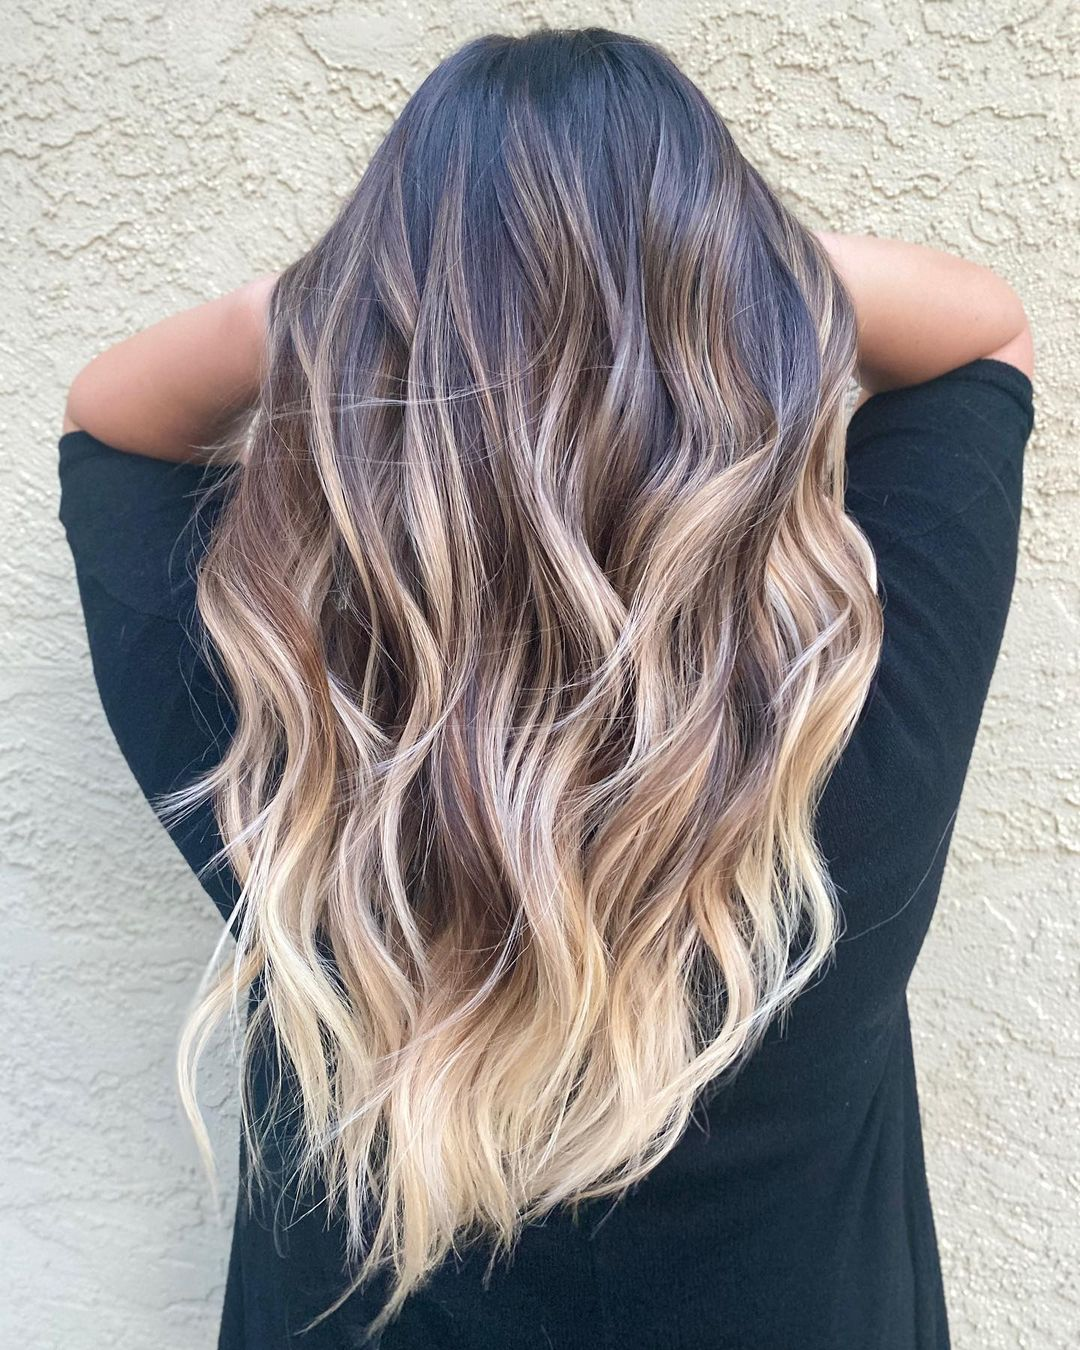 Blonde Balayage with Colorful Roots